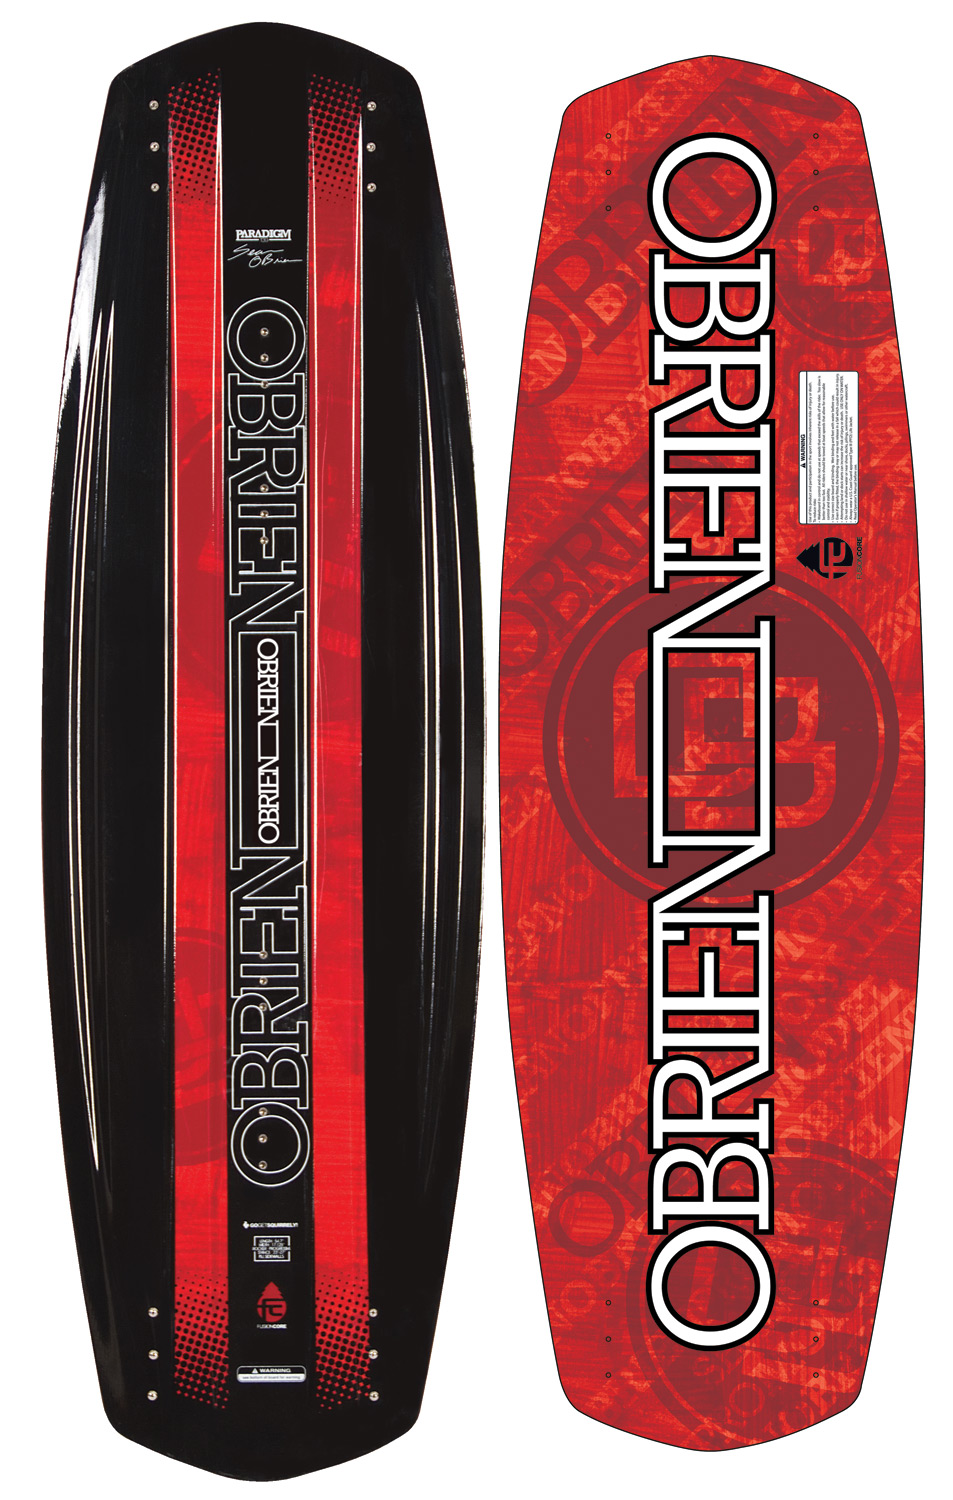 Wake Looking for a board that will match your levels of style and performance? Grab the O'Brien Paradigm Wakeboard and don't look back! In the past, boards that were great on the obstacles suffered off the wake and vice versa. Not anymore! The Paradigm forges a unique union between wake and park riding, a board equally at home shredding rails or boosting off the double up. Featuring our new Fusion Core with top-to-bottom full-length wood stringers, we utilize a heavily ribbed cross-section and tapered geometry to give the right amount of flex to the board. The result is a board that is stiff through the midsection with flexible, snappy tips, allowing the board to carve with incredible energy and accelerated boot off the wake. With HDPE (High Density Polyethylene) base and rails, the Paradigm is as durable as they come and is quickly becoming an O'Brien team favorite. Wakeboard Binding CompatabilityCan accomodate bindings with a 6 inch binding plate found here. Can only accommodate a single mounting position option for Liquid Force bindings with a 8 inch binding plate and offers two positions for all other vendors found here. - $239.95